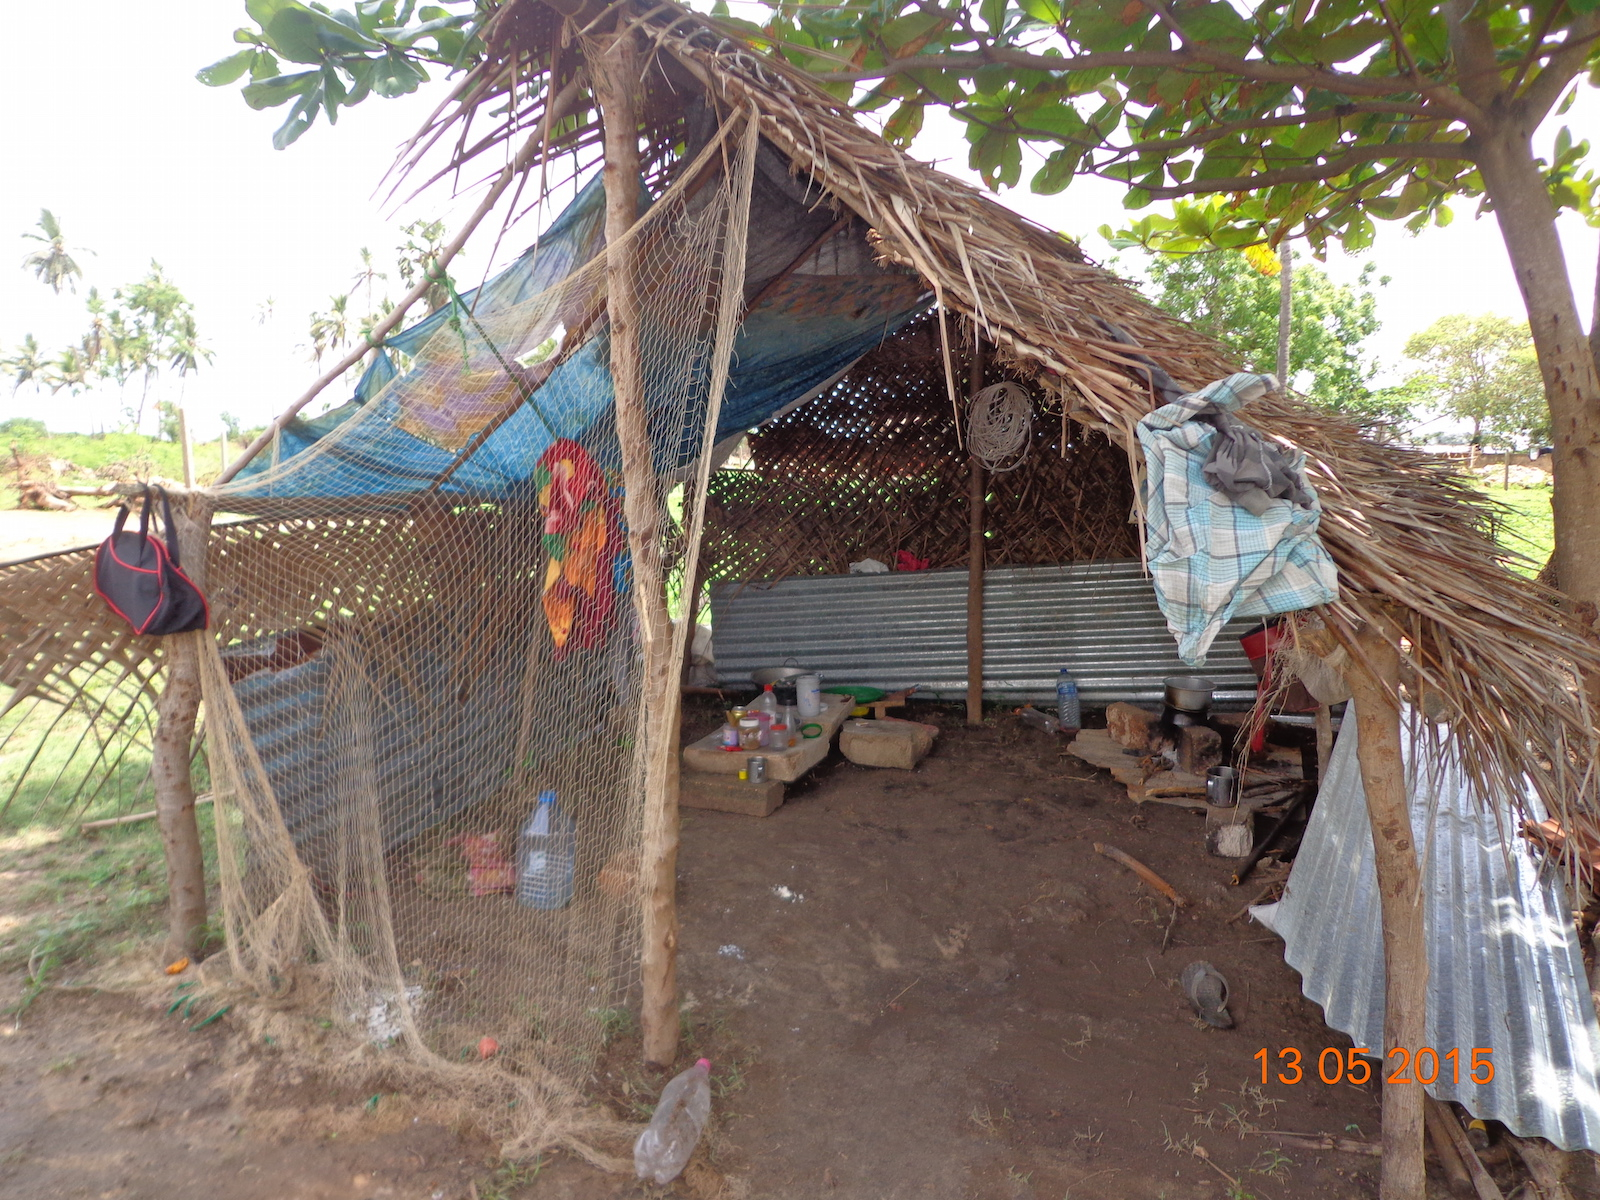 Temporary shelter erected by people-2